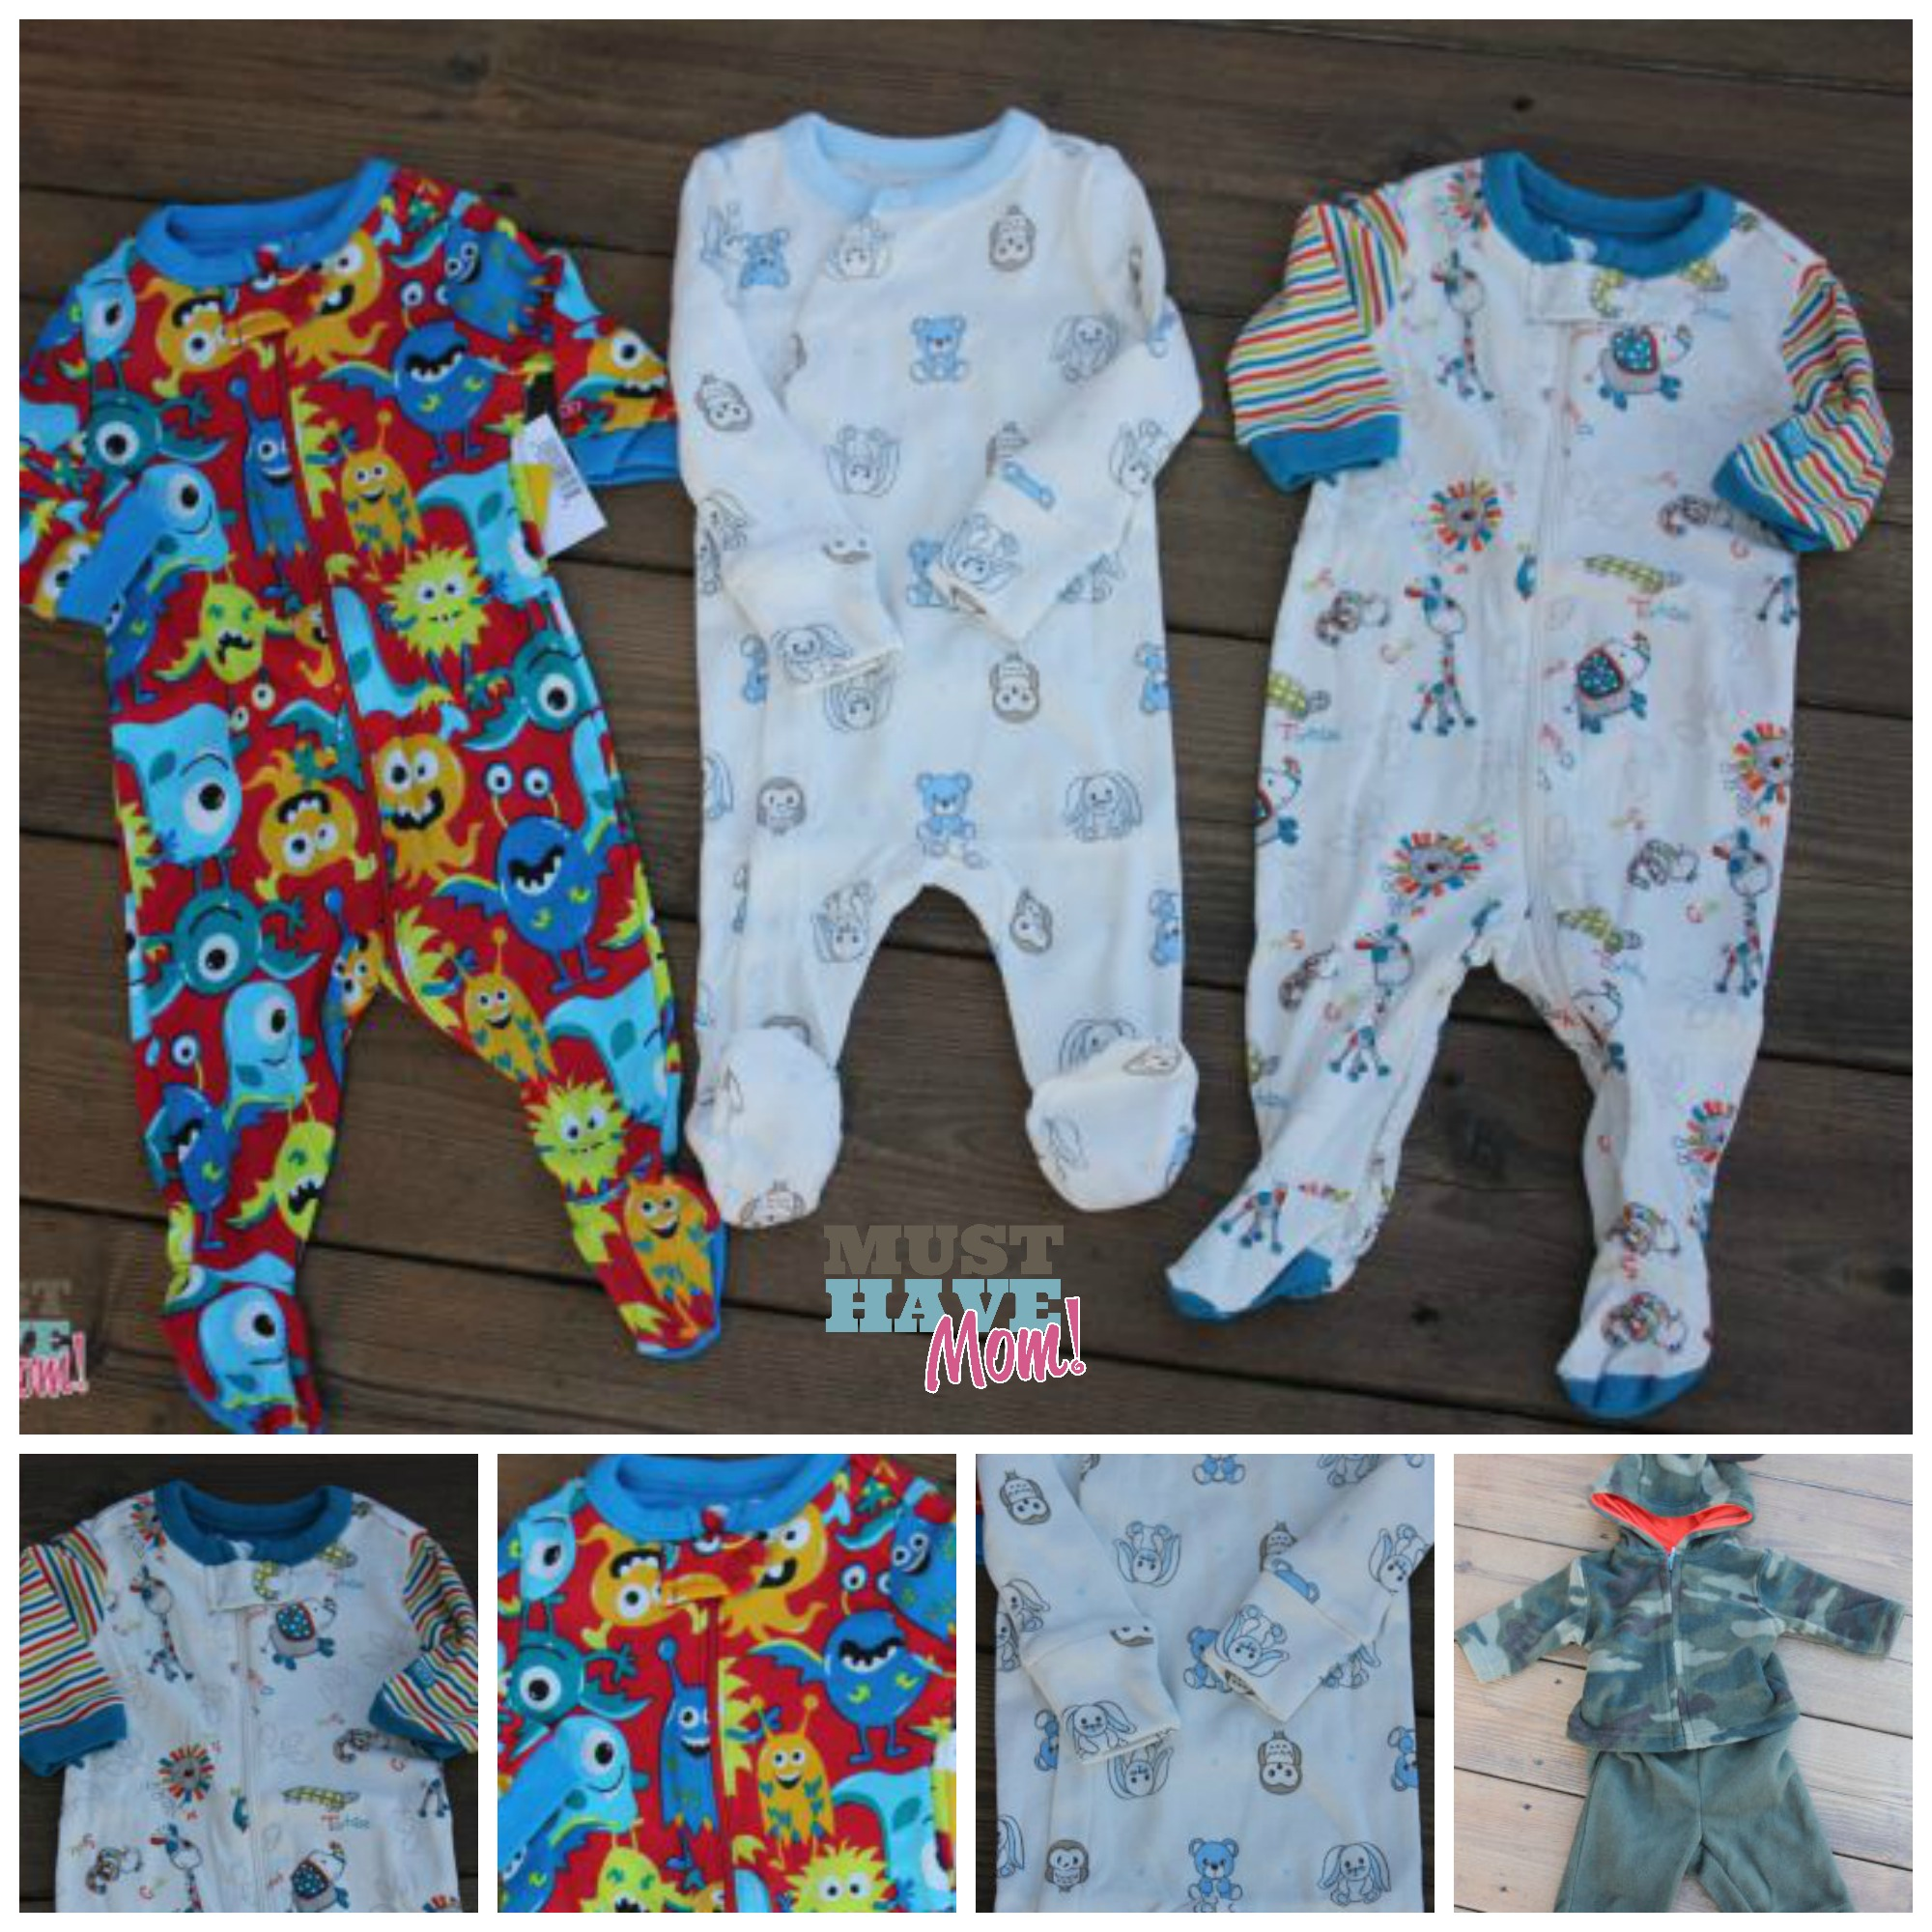 Must Haves For Mom & Baby Event The Children s Place Baby Clothes